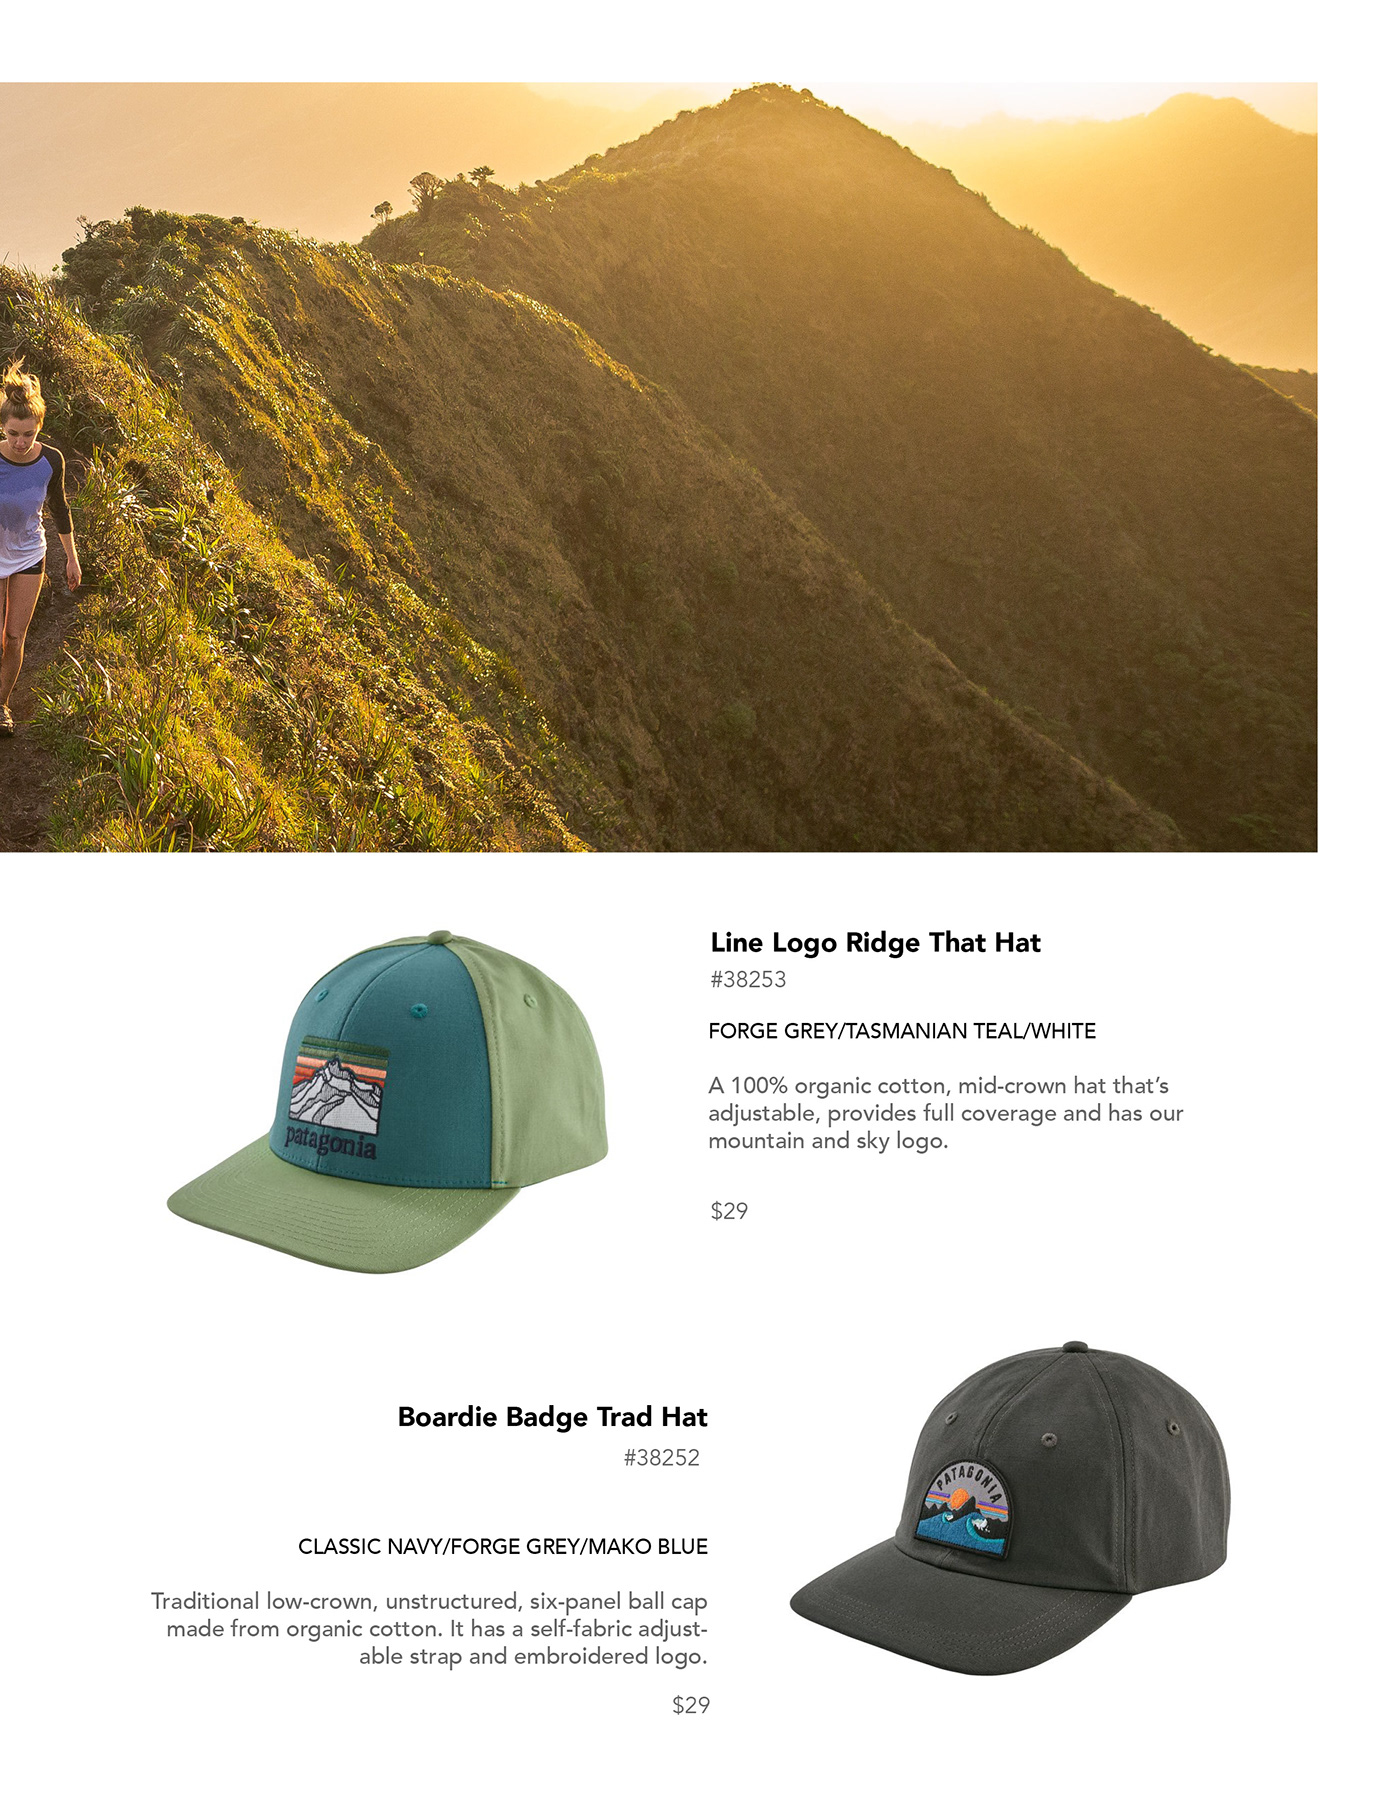 Patagonia Catalog on Behance